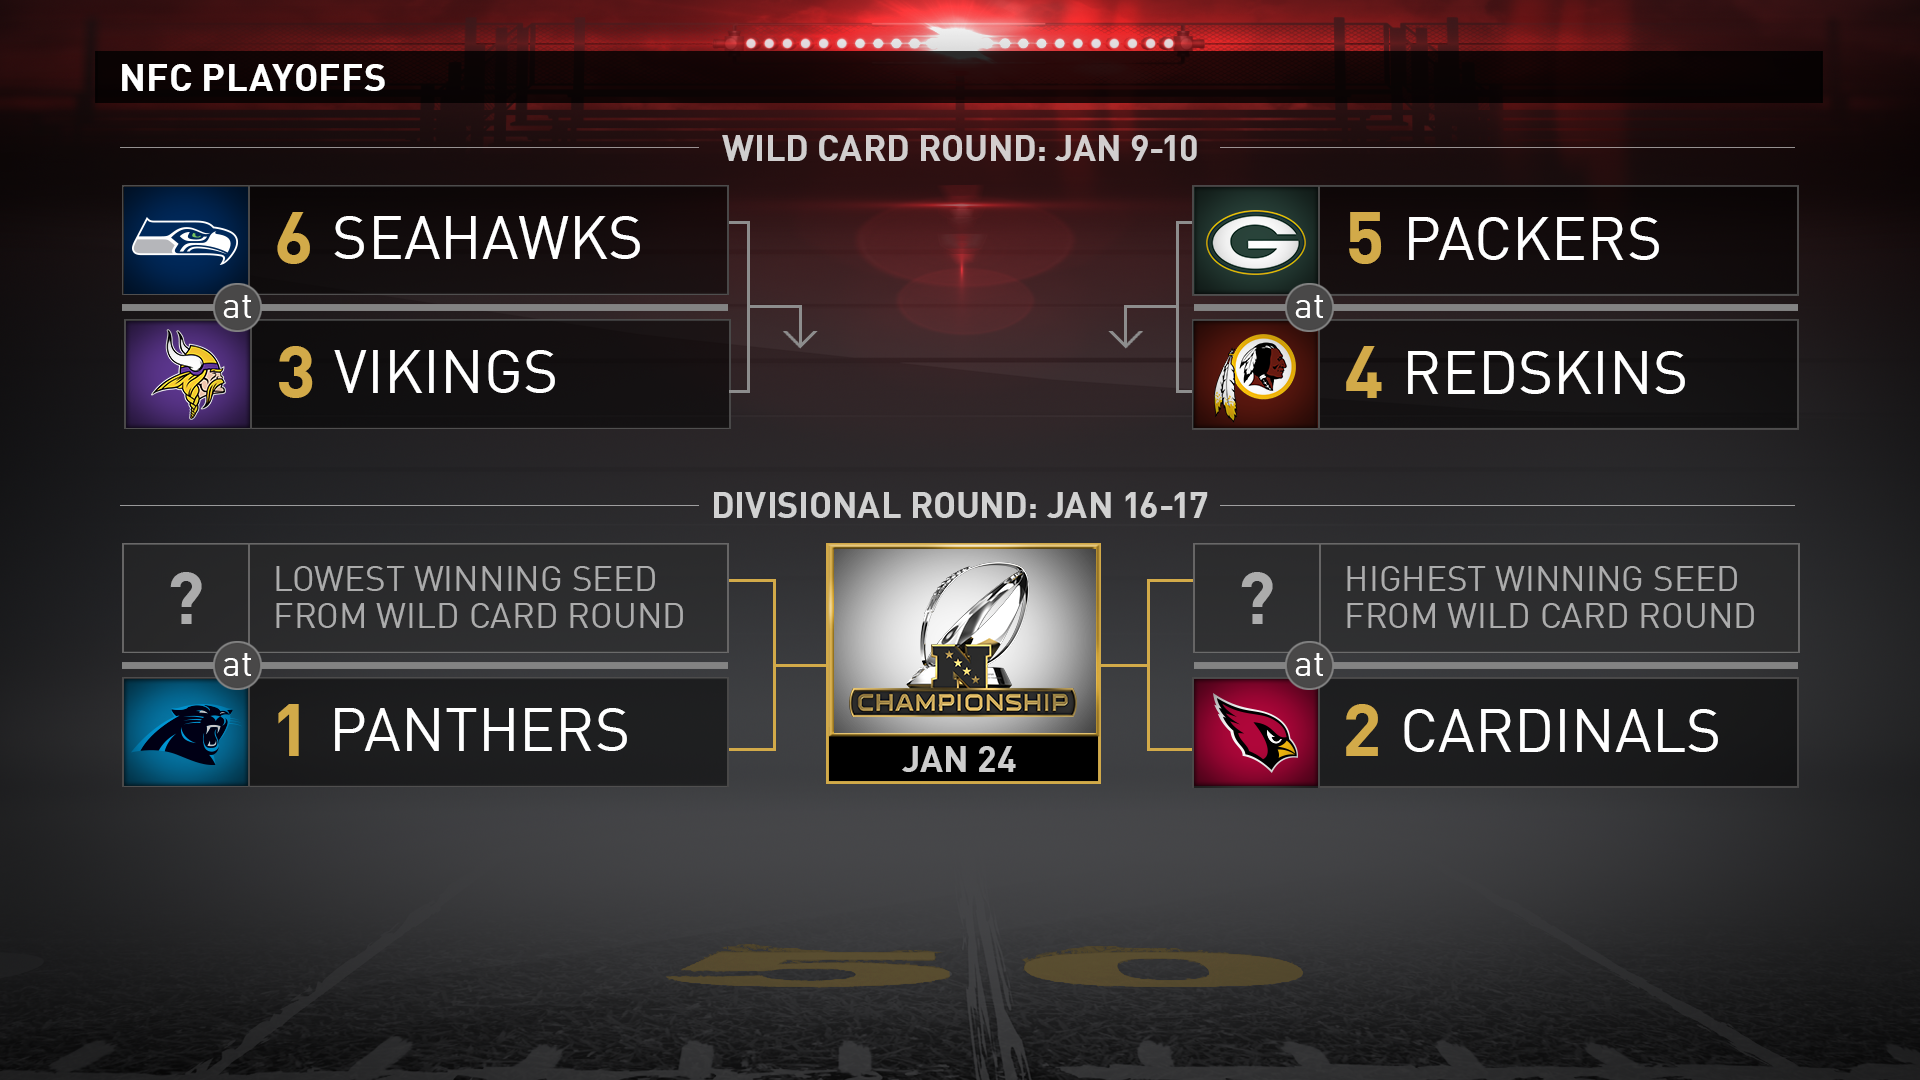 nfc playoff bracket nfl scores betting line